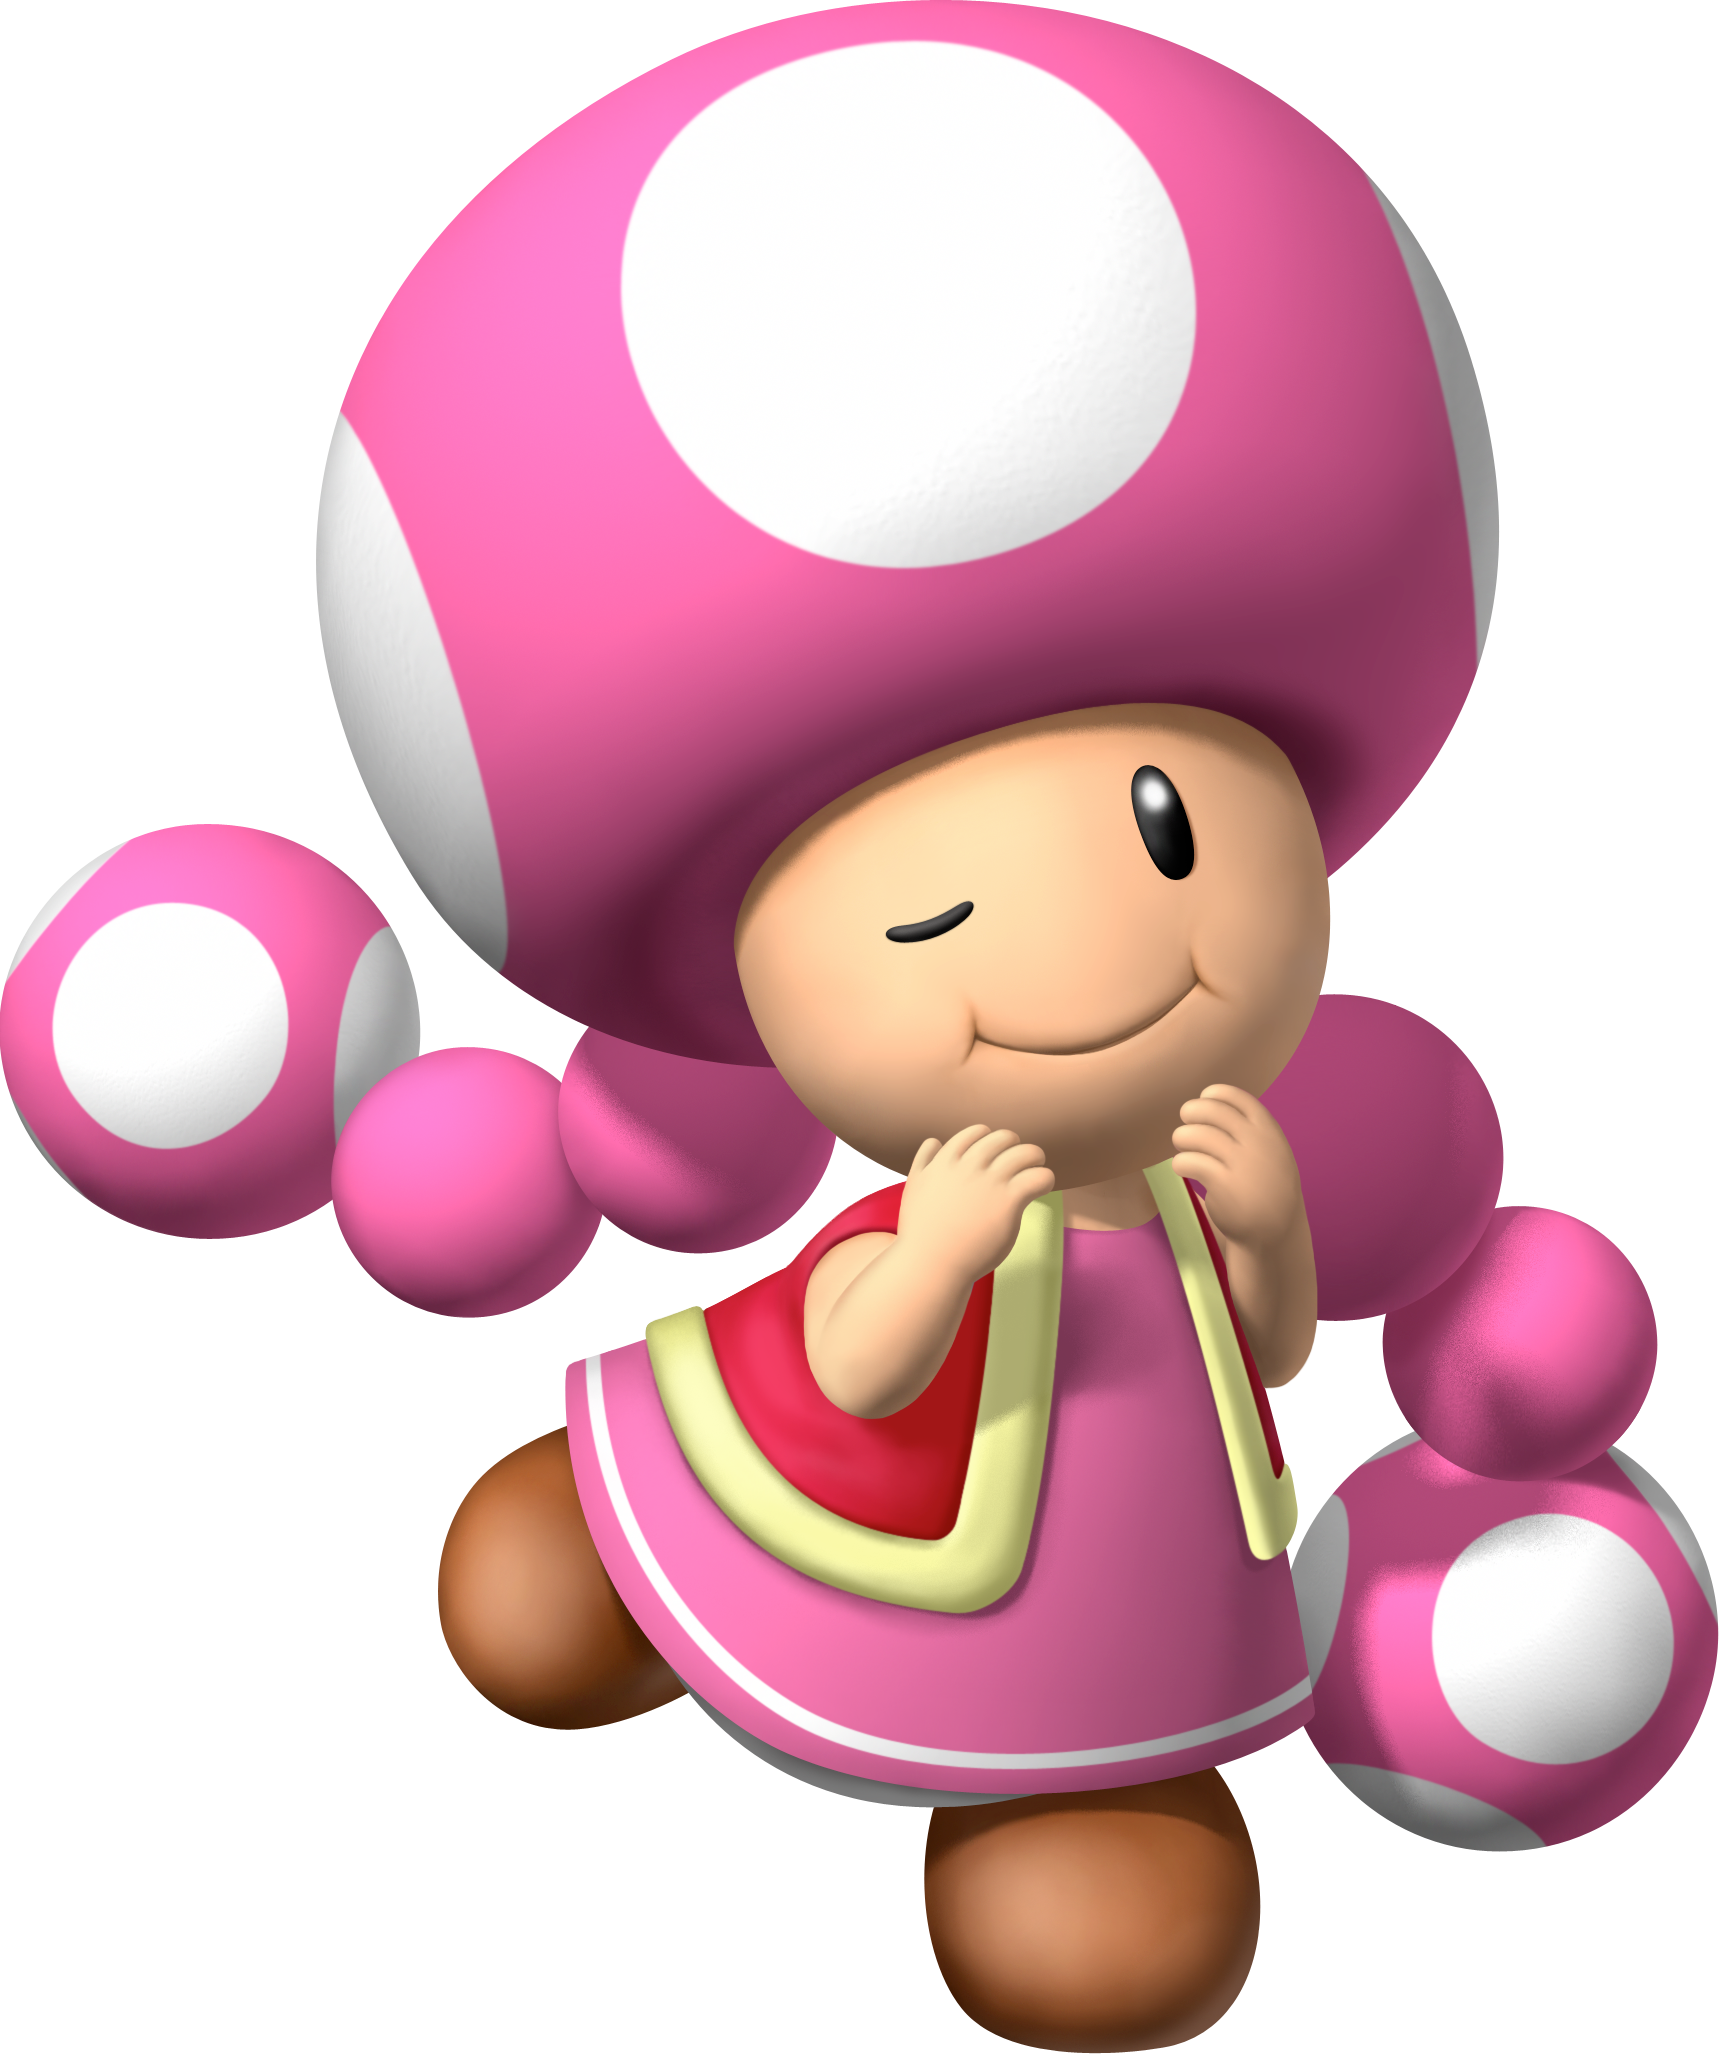 What I M Assuming The Other Mario Characters Will Look